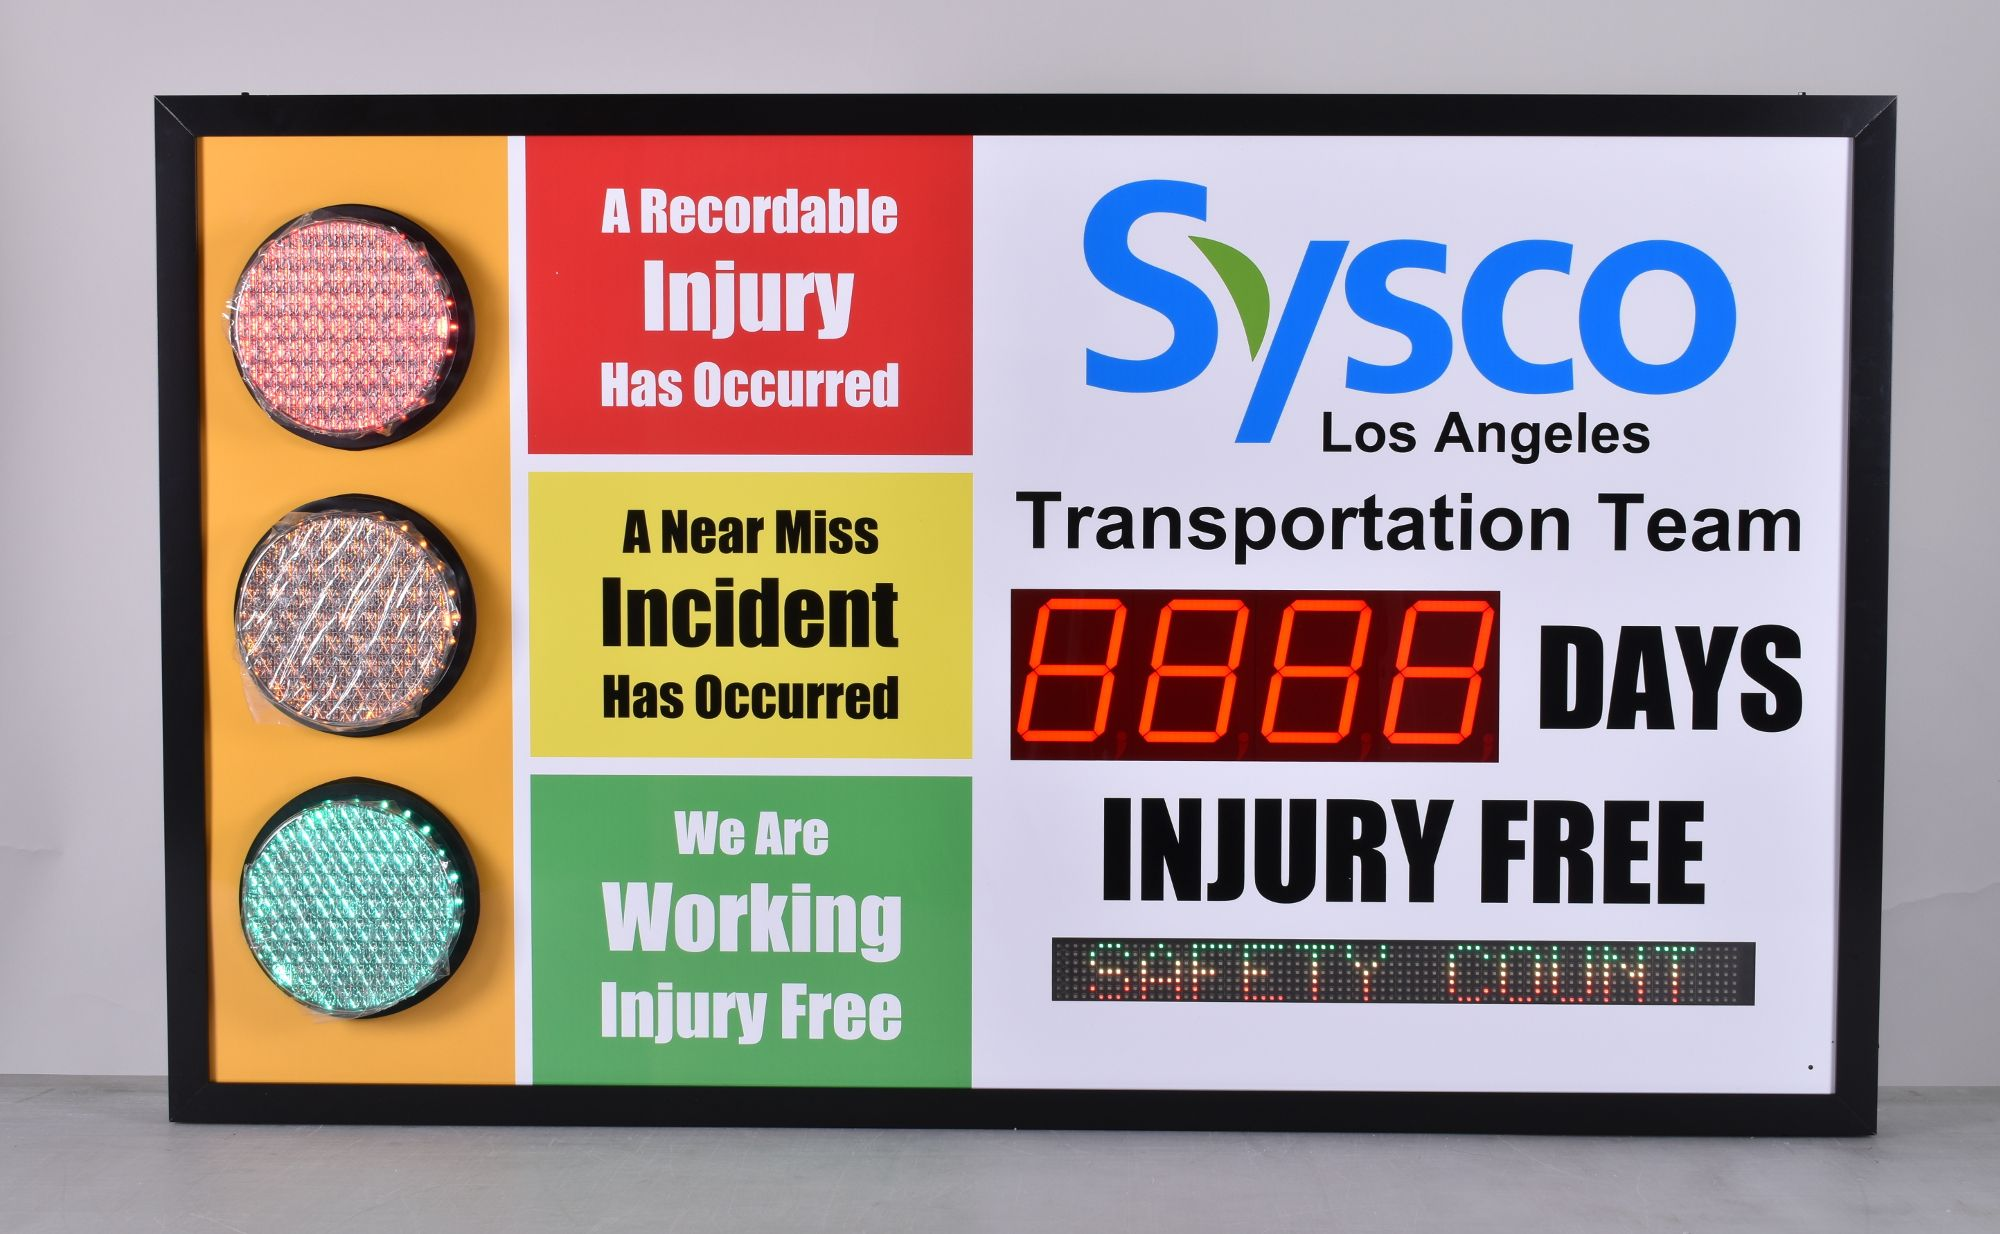 Stop light Safety Scoreboard with Large Display and Scrolling